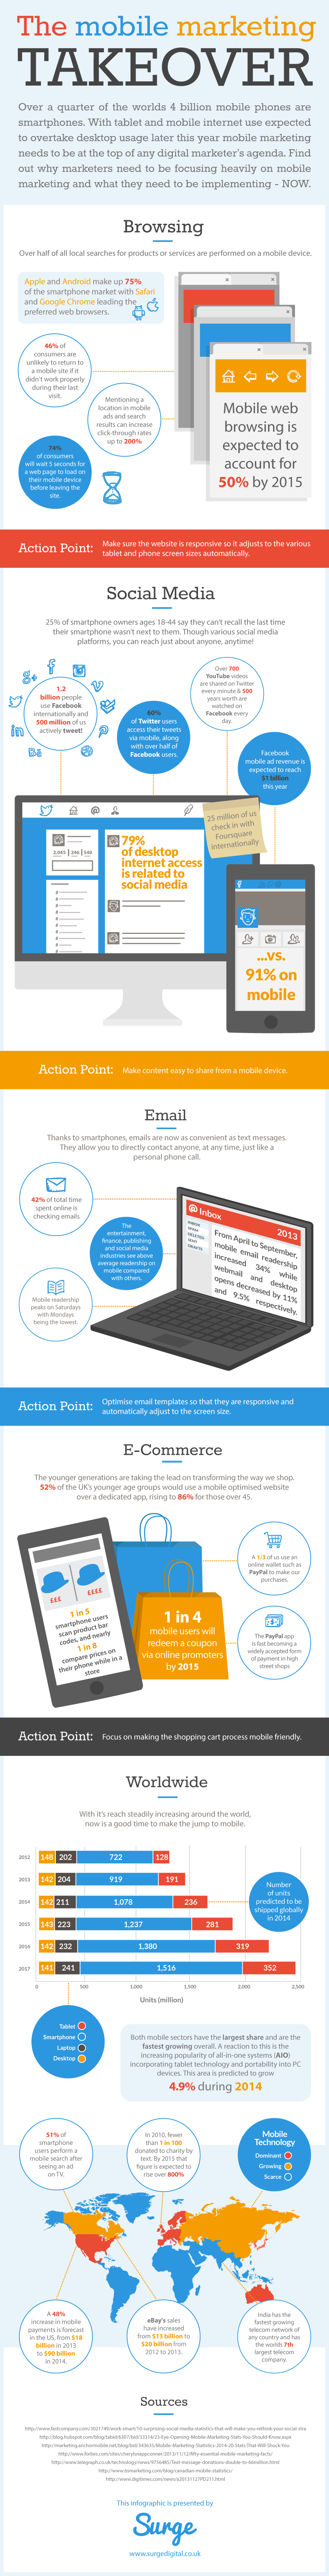 surge-mobile-marketing-infographic